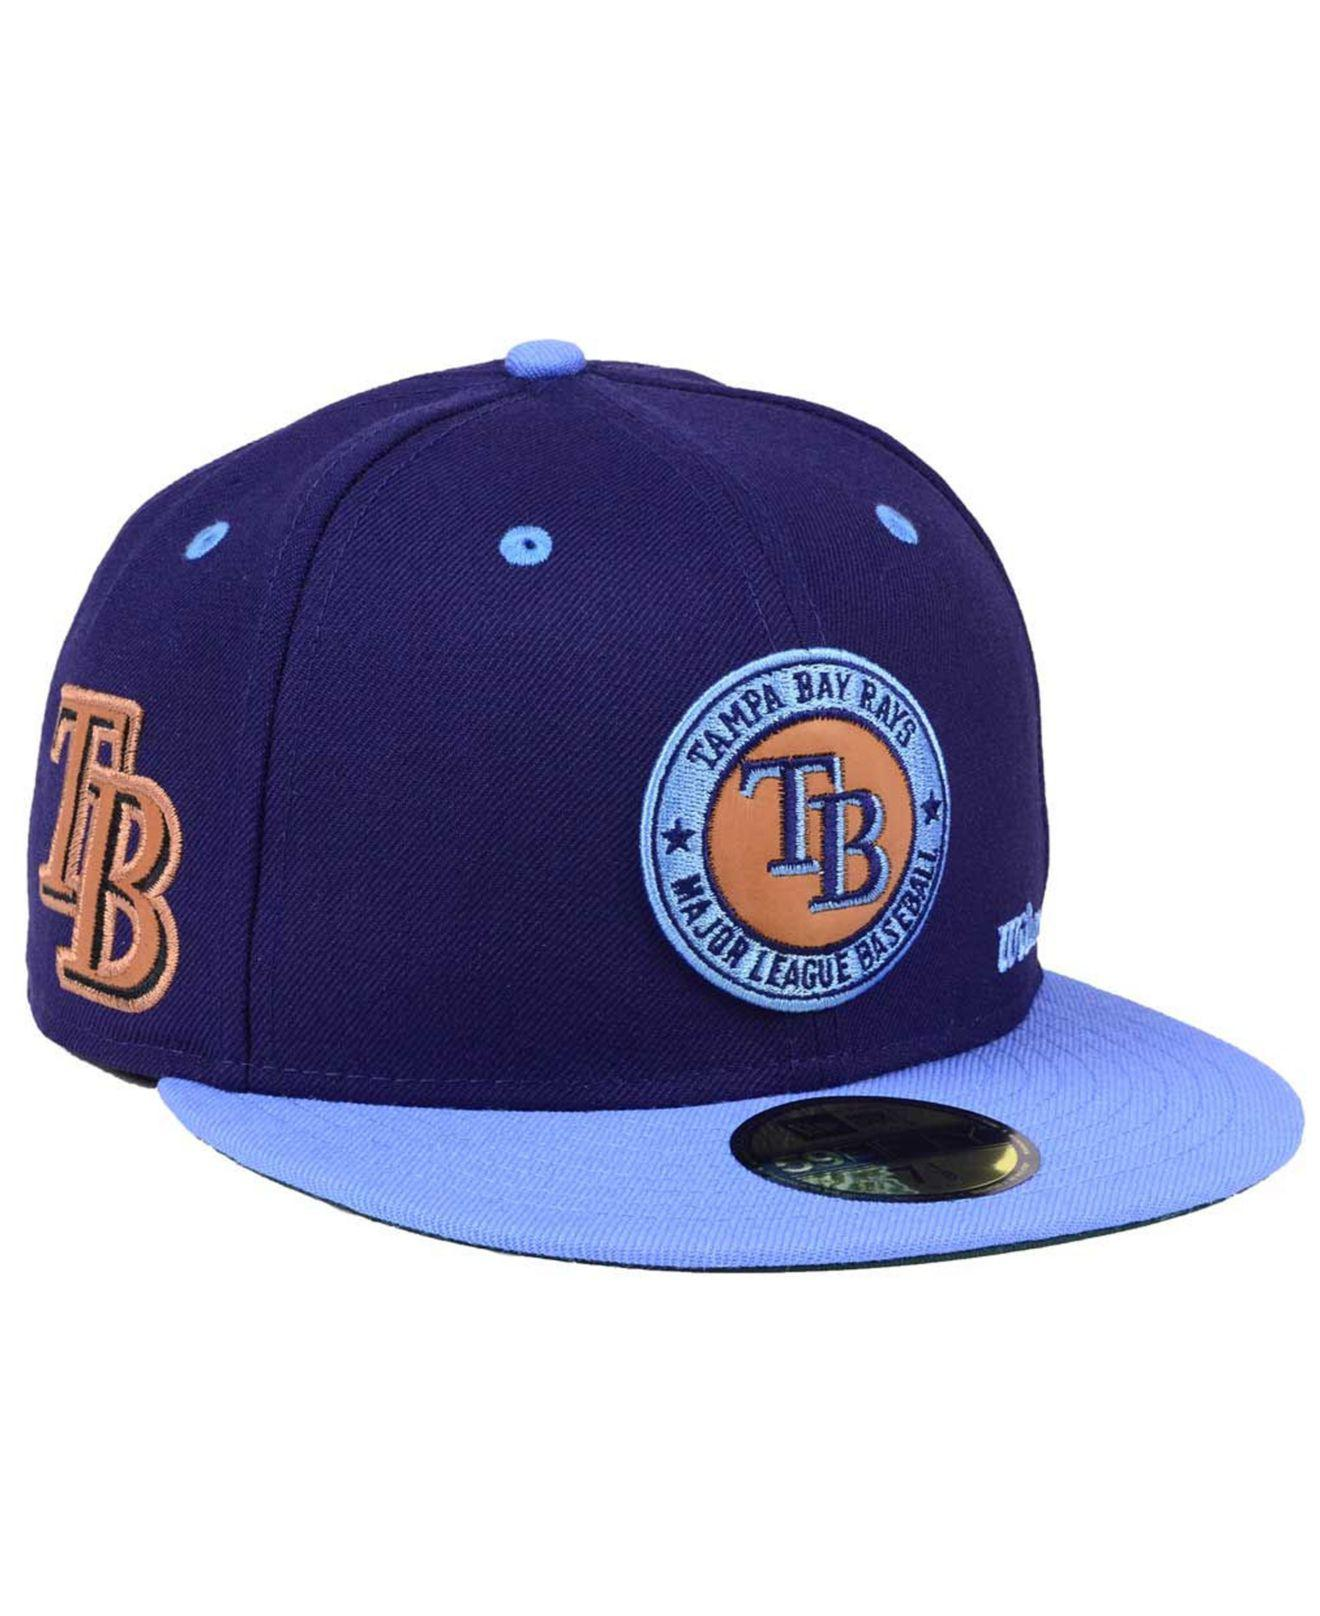 newest 8afea 61411 ... purchase ktz. mens blue x wilson circle patch 59fifty cap 4a115 69bea